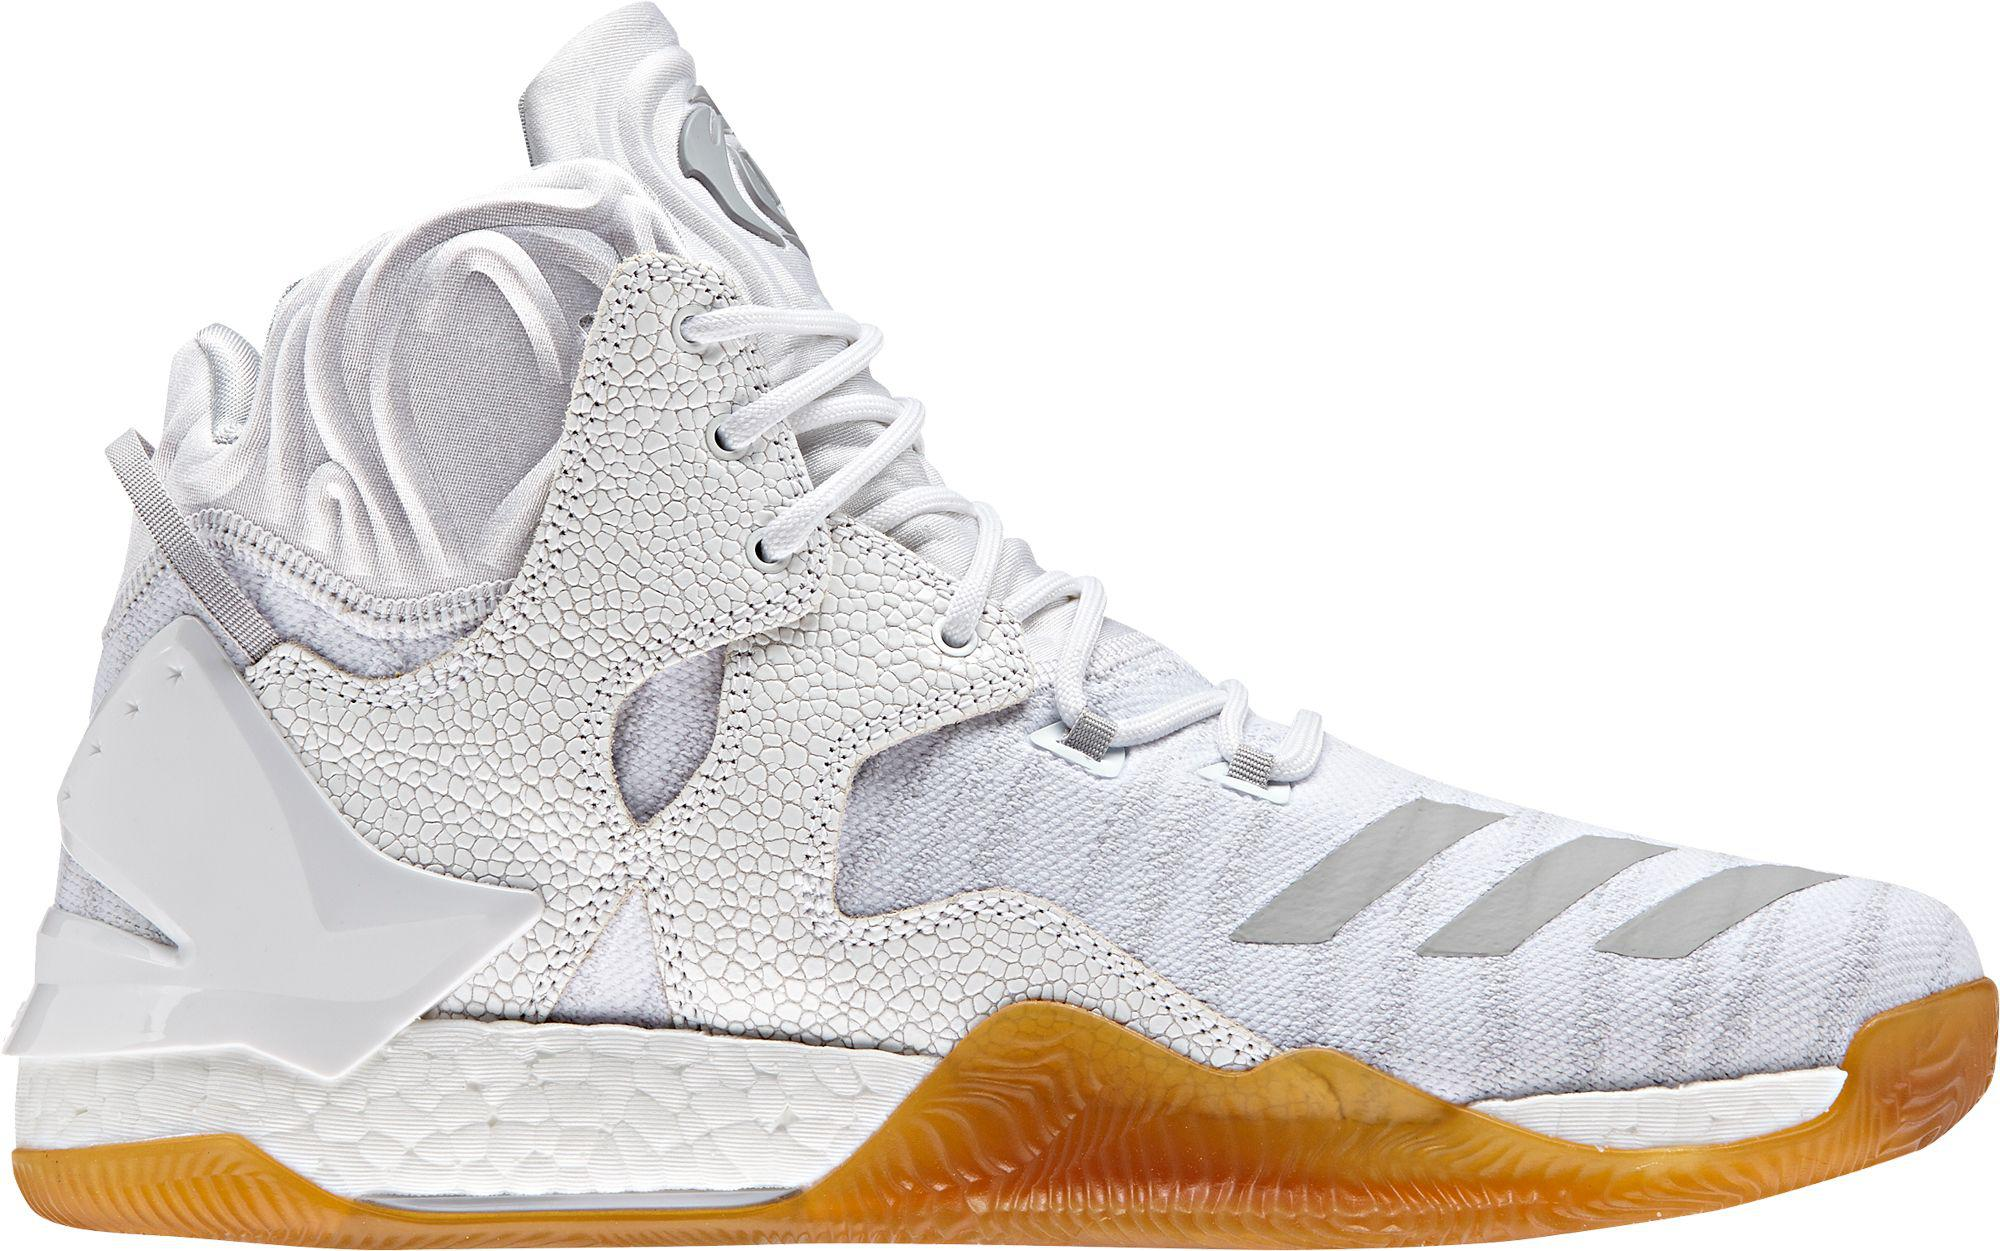 de468ab30802 ... inexpensive lyst adidas d rose 7 boost basketball shoes in white for men  b8ec1 d3e6a